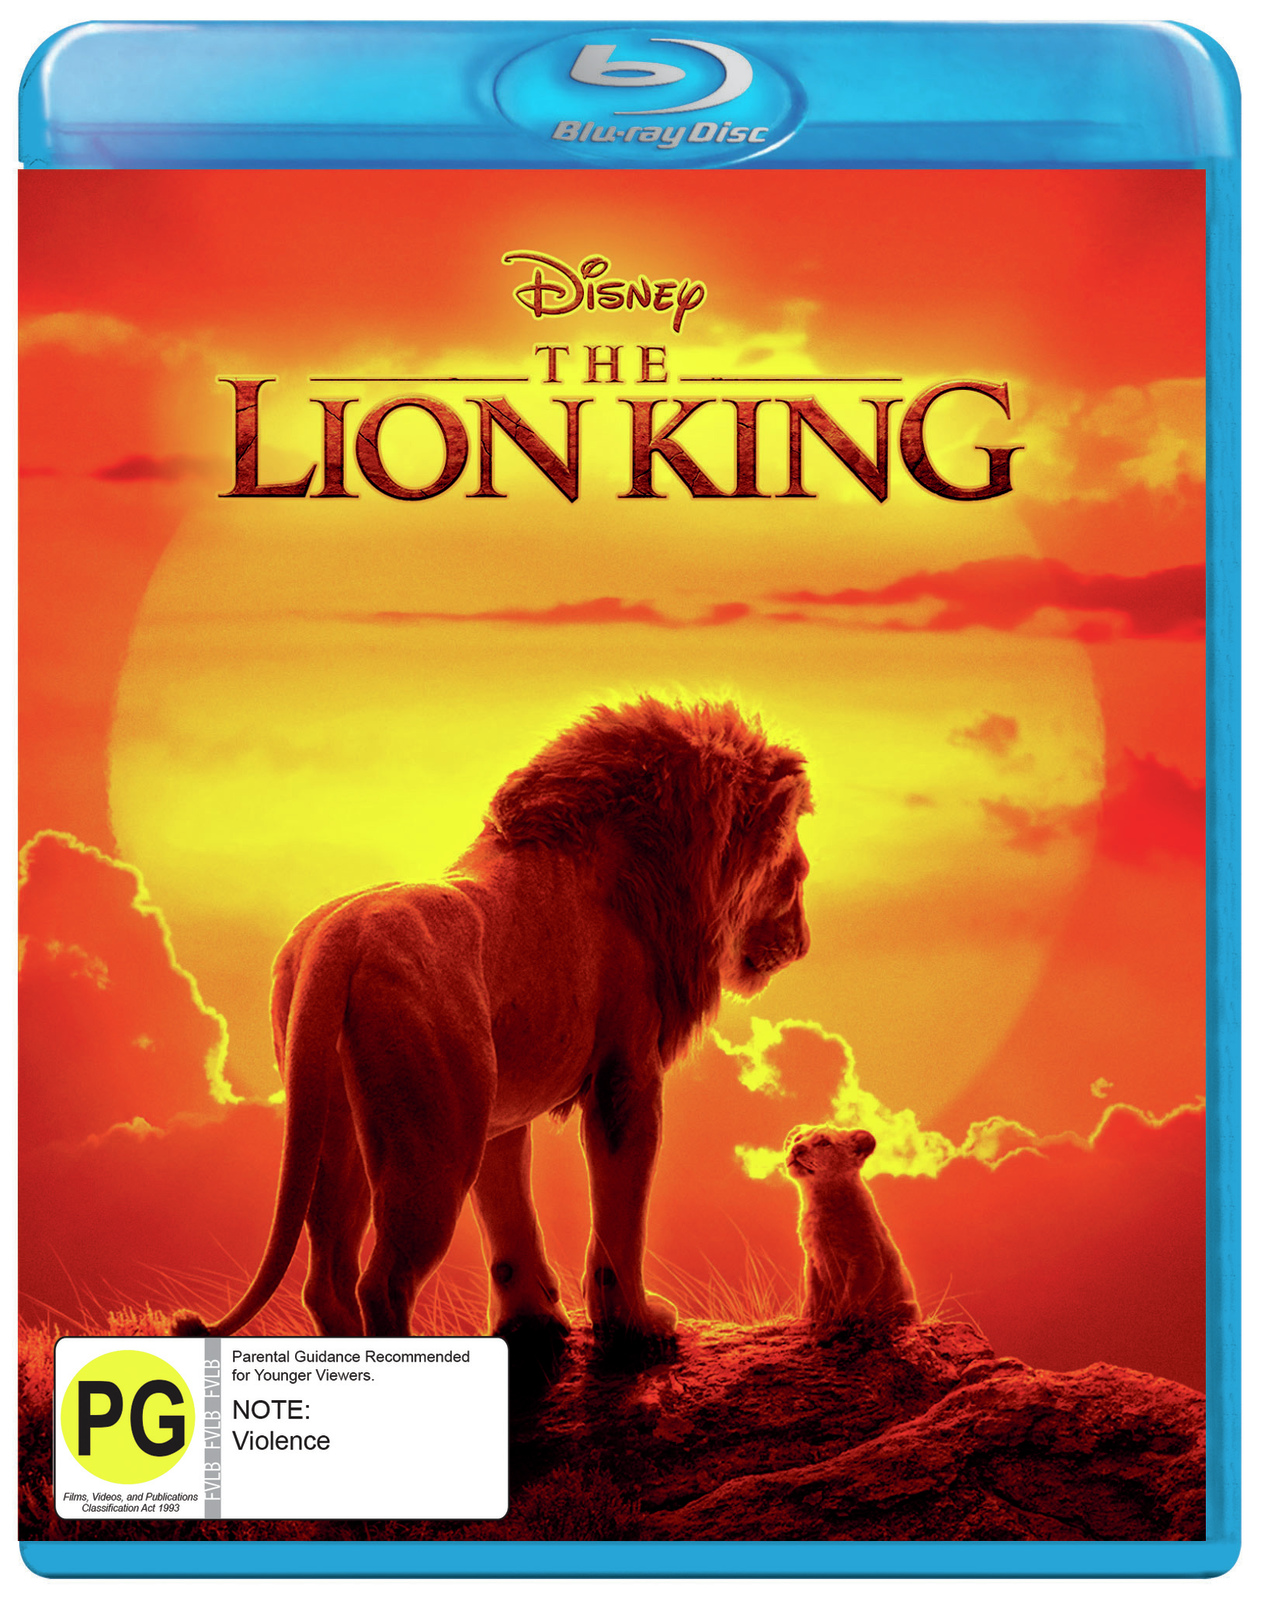 The Lion King (2019) on Blu-ray image